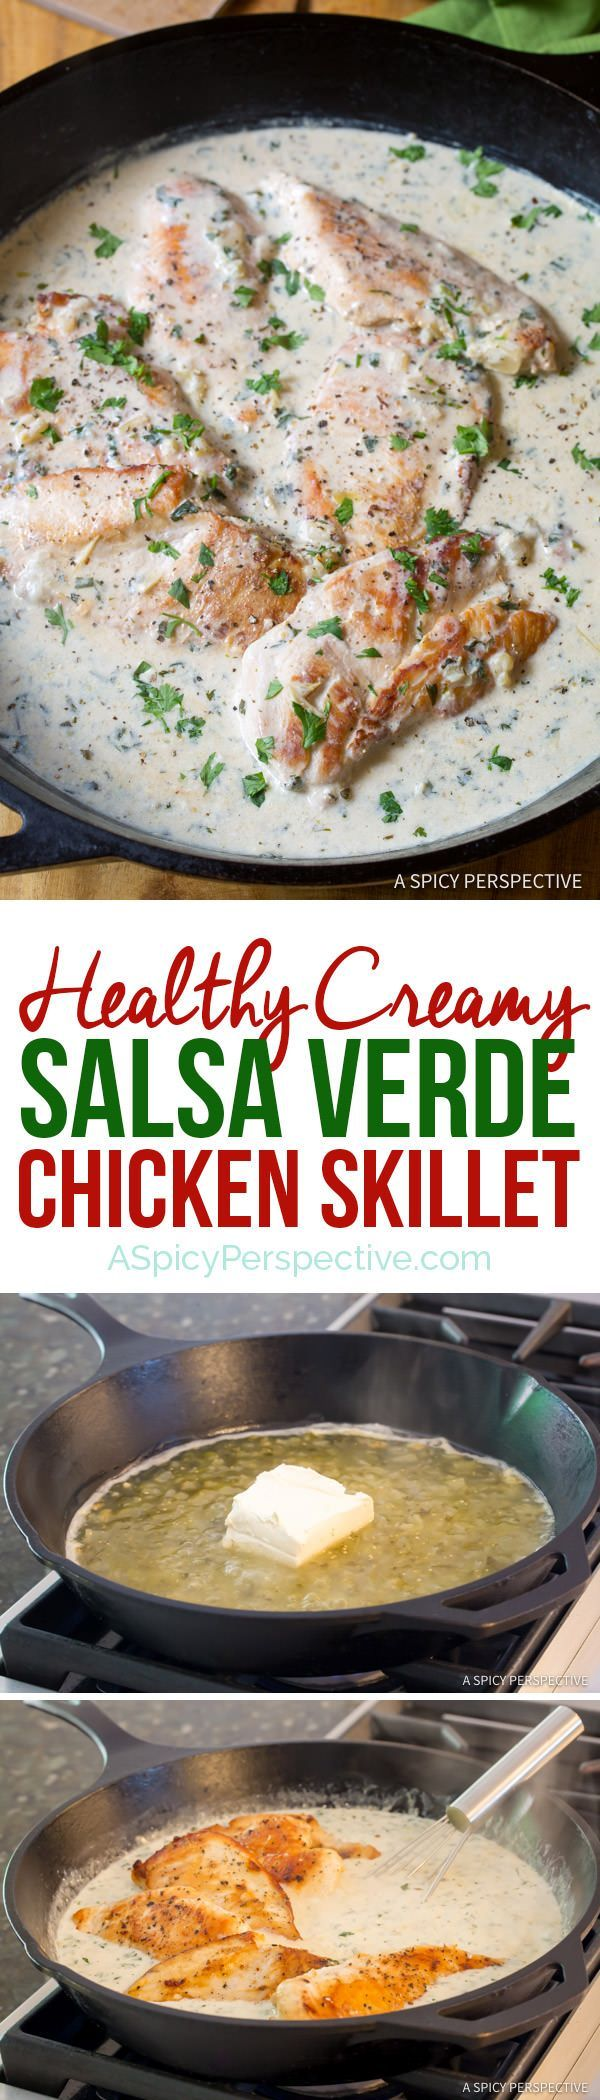 Crazy over this Healthy Creamy Salsa Verde Chicken Skillet Recipe | ASpicyPerspective.com